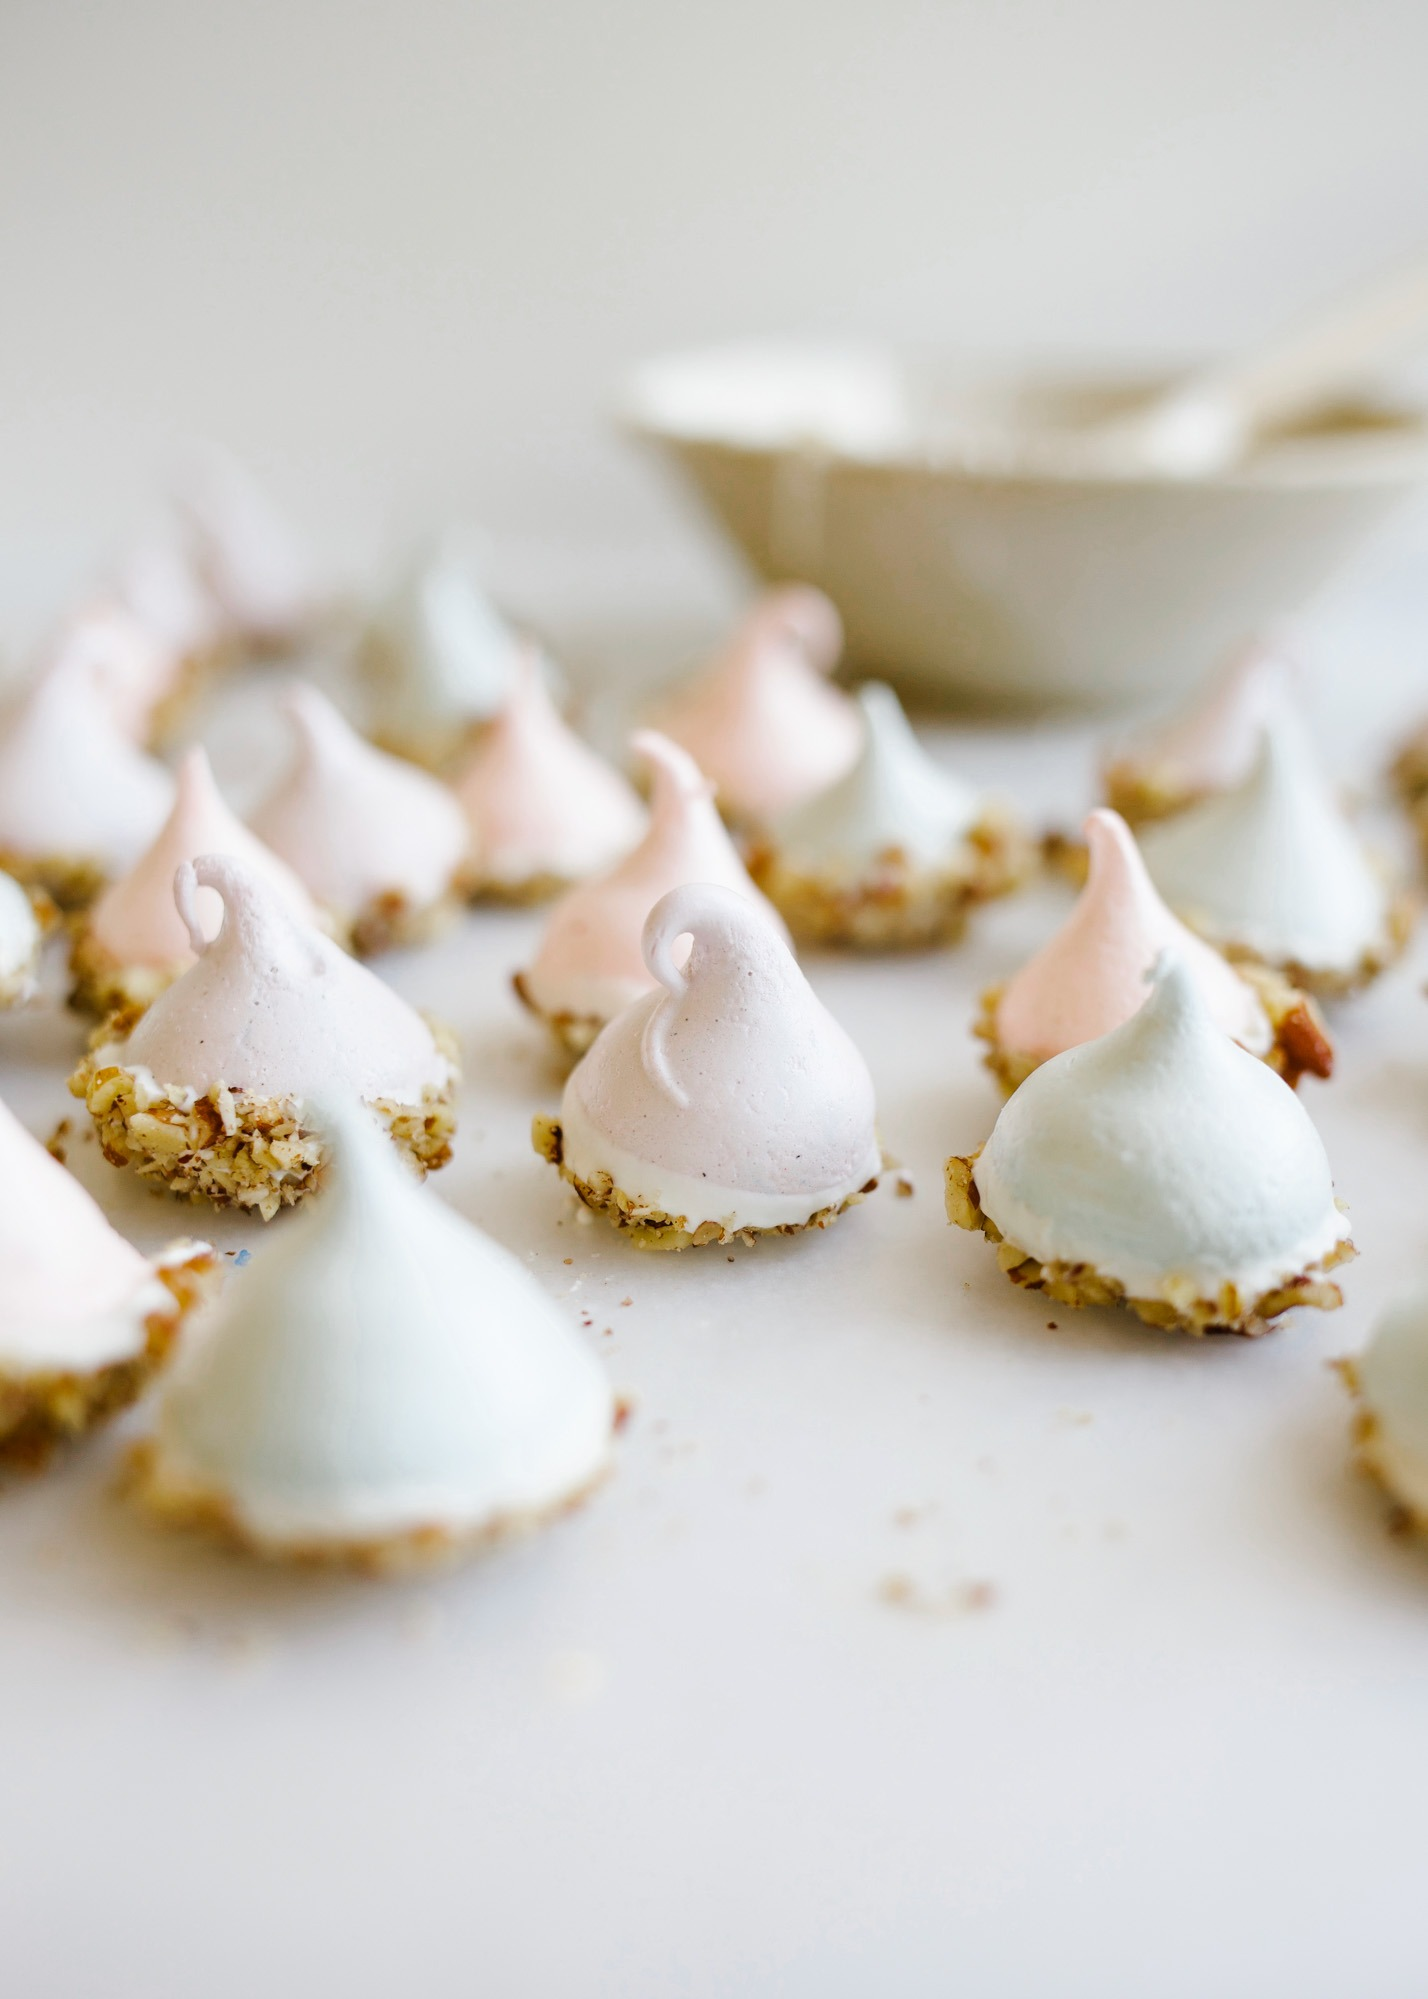 You Need to Know How to Whip Egg Whites and Make Meringue Cookies. This is a tutorial on whipping egg whites to firm, stiff, soft, or foamy peaks and how to make a meringue! Learn how to make easter resurrection cookies with pecans and how to troubleshoot what went wrong with your egg whites. Why did they defeat, not fluff up, not whip, etc. Learn how to use up egg whites in this tutorial post on thewoodandspoon.com by Kate Wood